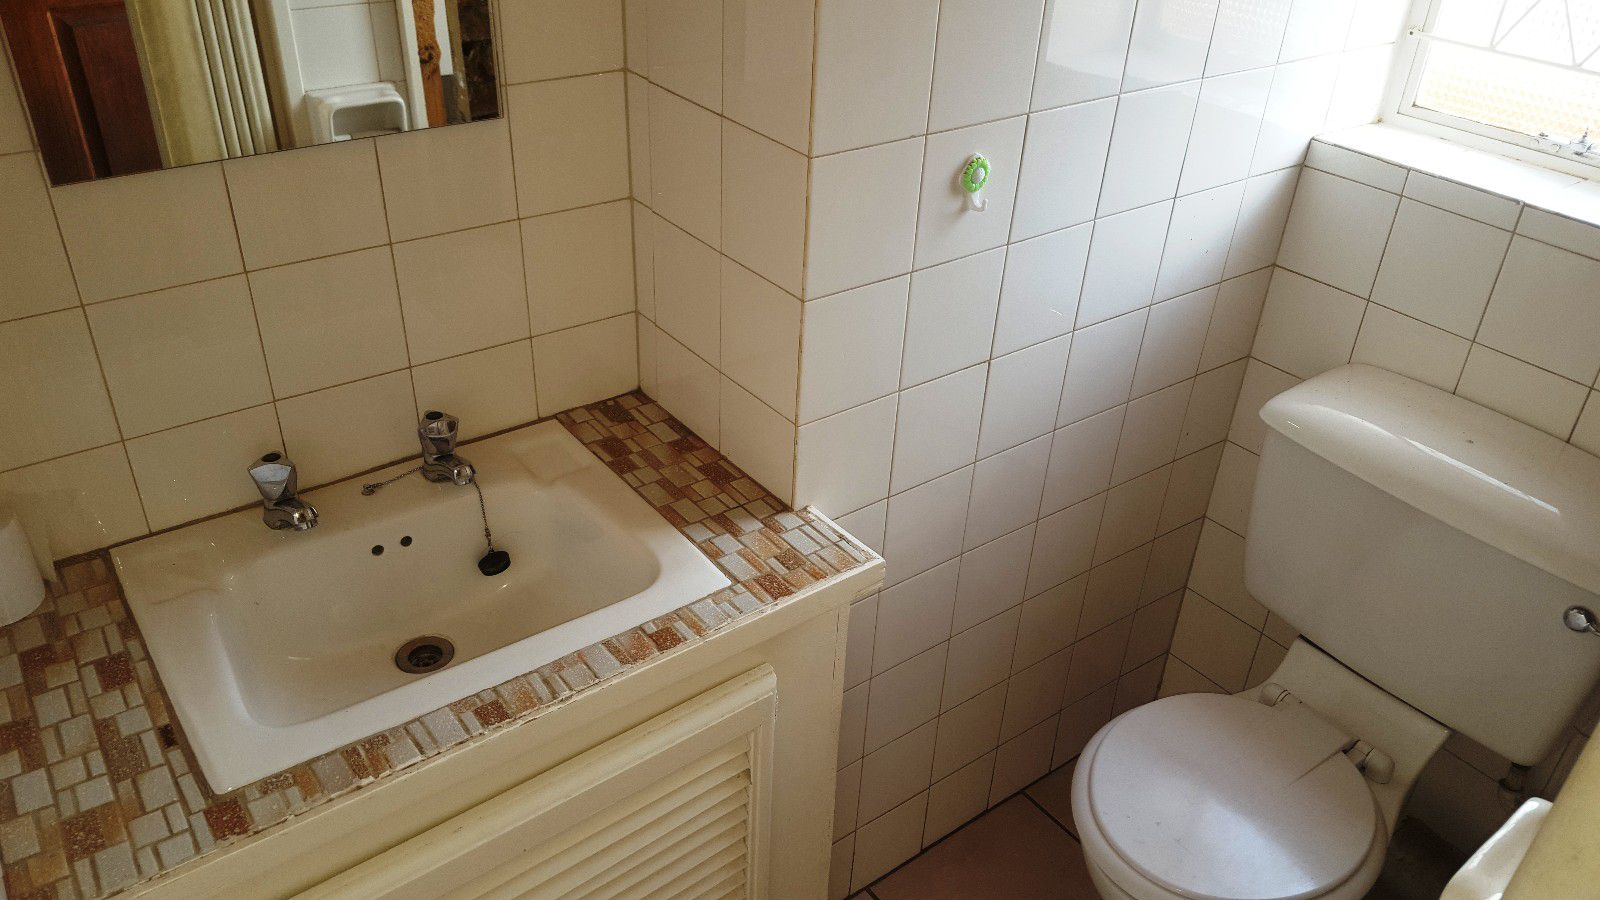 Potchefstroom Central property for sale. Ref No: 13449643. Picture no 25